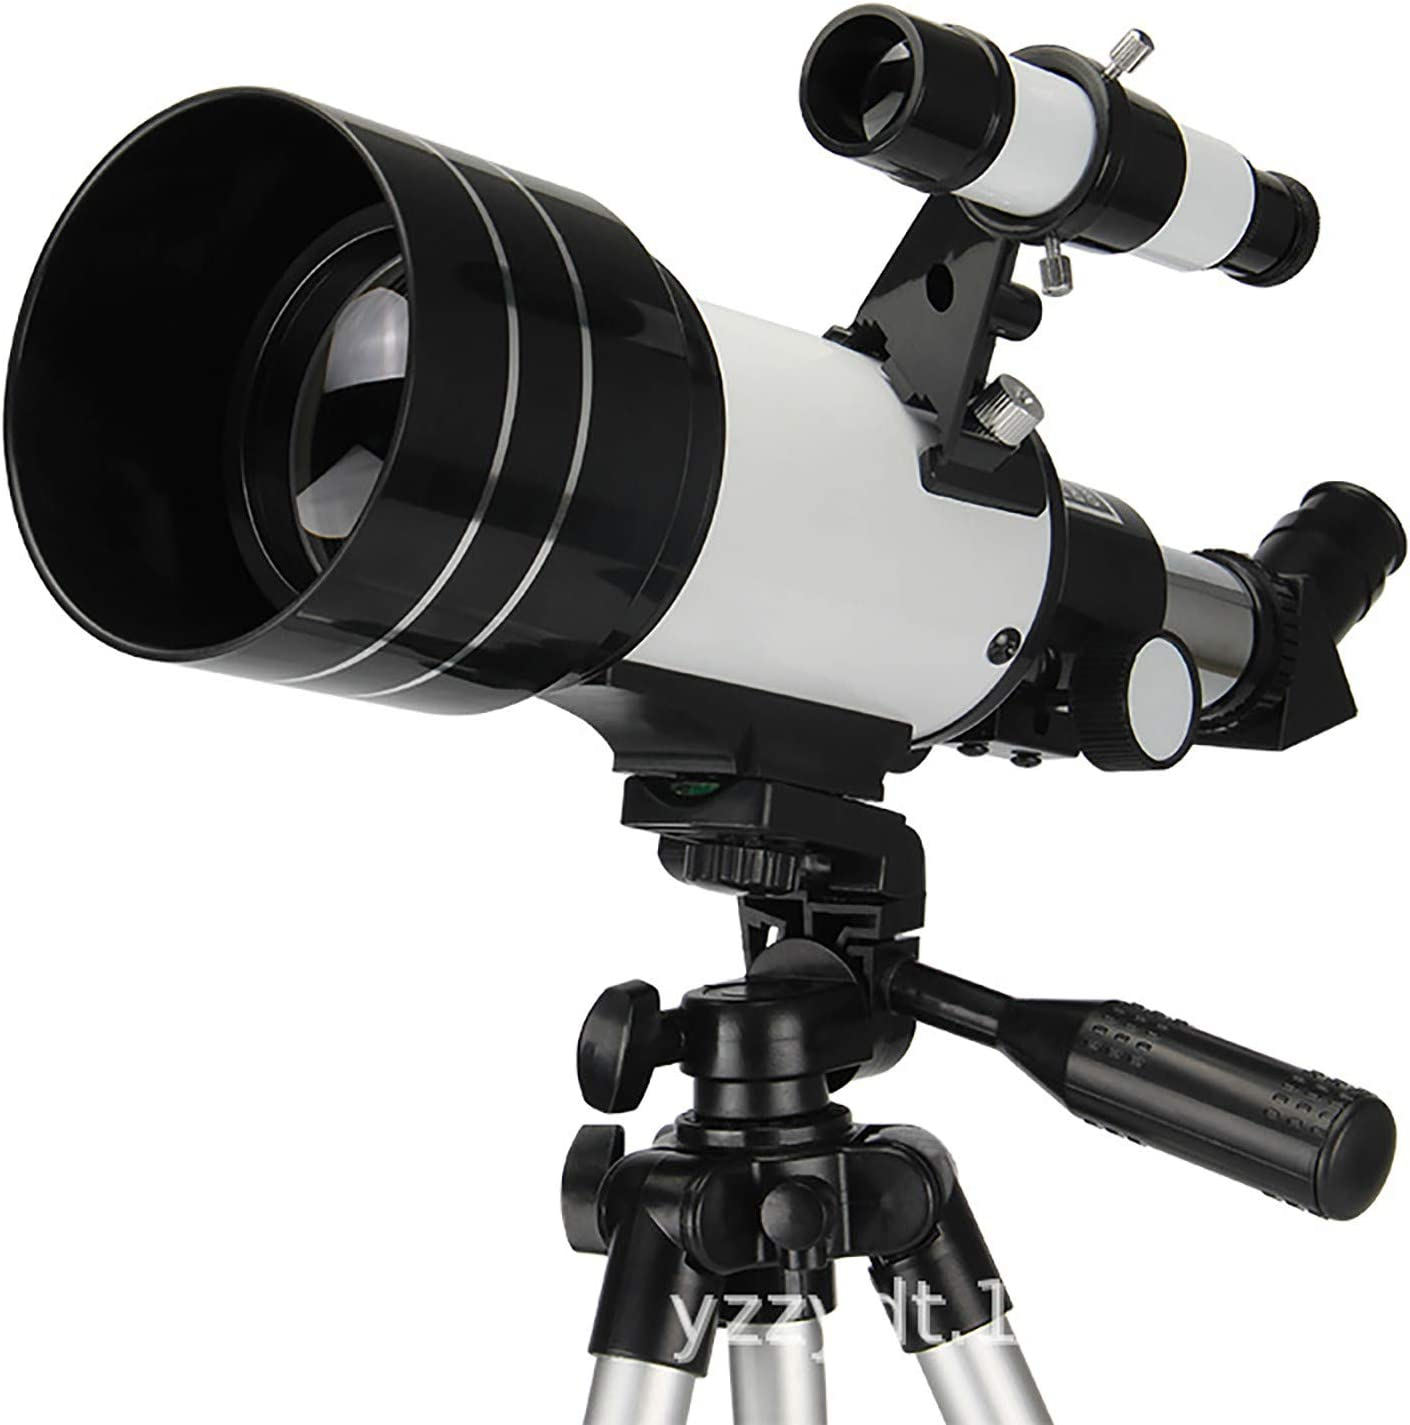 GUbaliYA Astronomy Telescope for Kids Adults and Beginners,70mm Aperture 400mm AZ Astronomical Refractor Travel Telescope with Tripod and Phone Adapter to Observe Moon and Planet (White)